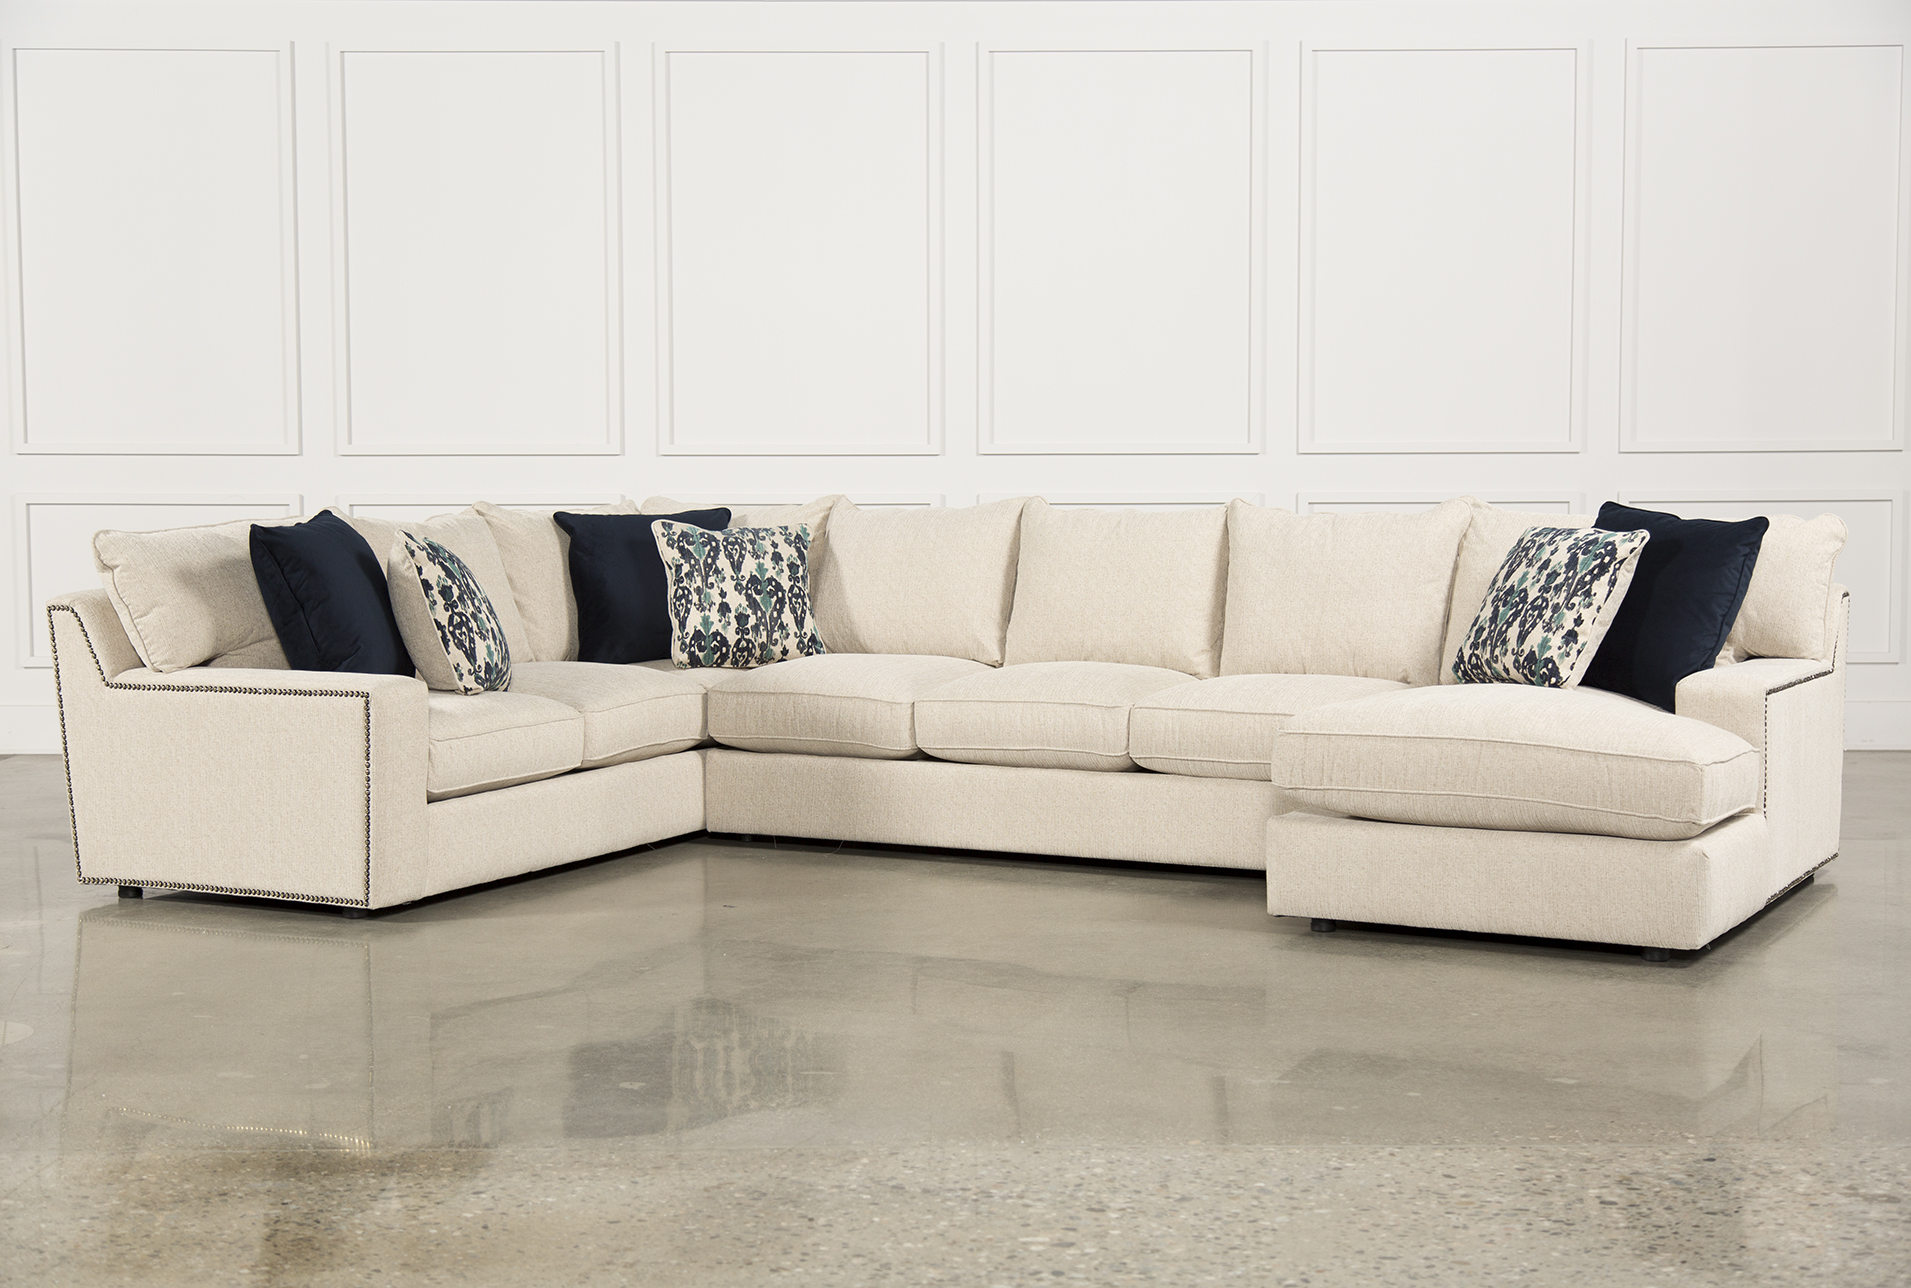 Rennell 3 Piece Sectional W/Raf Chaise